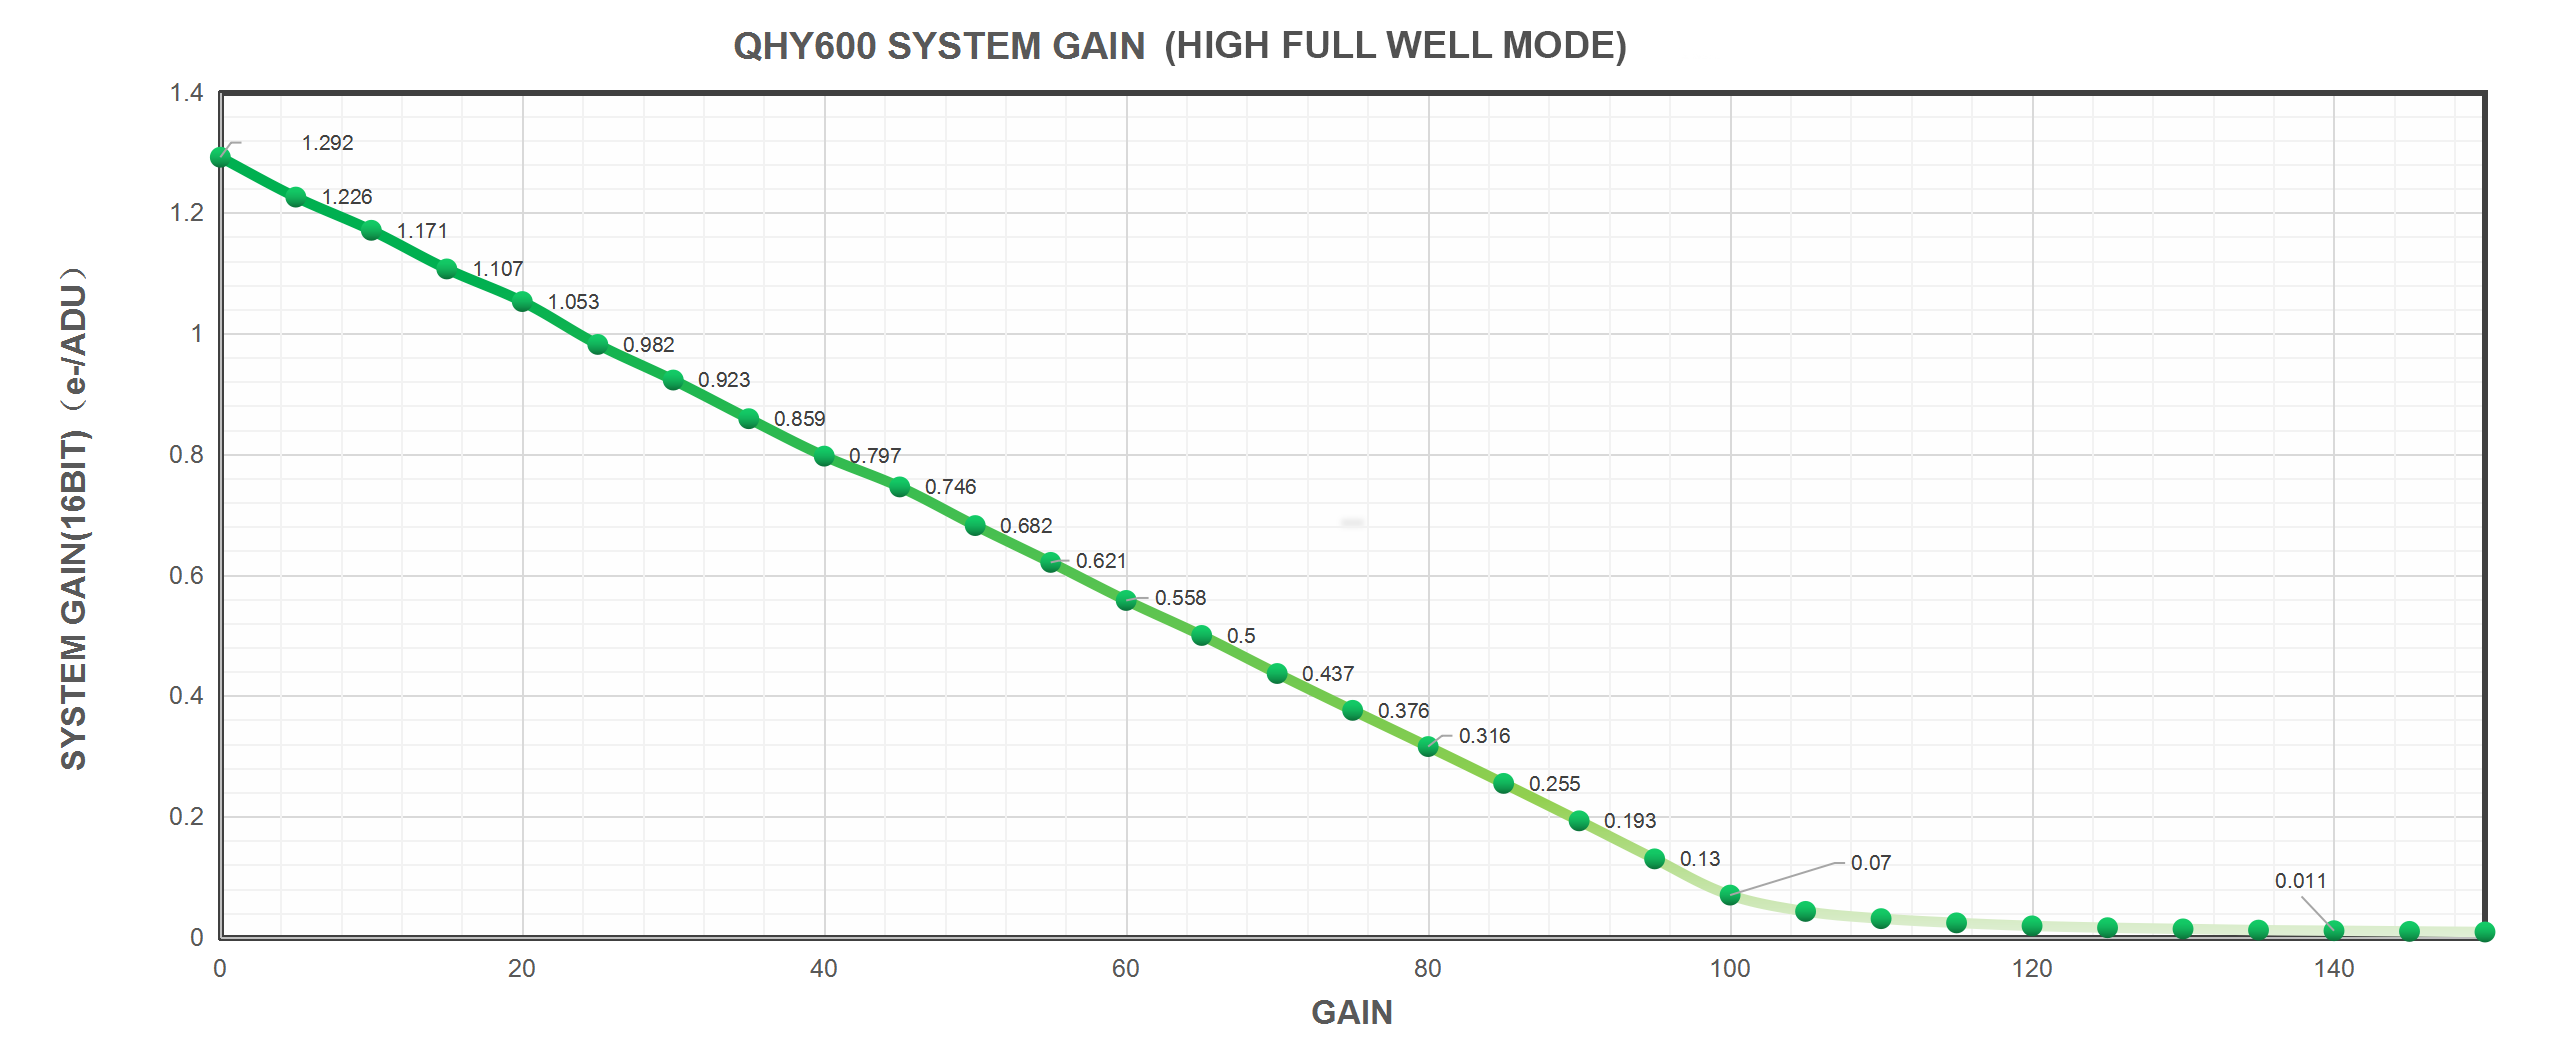 QHY600 System Gain (High Full Well Mode)